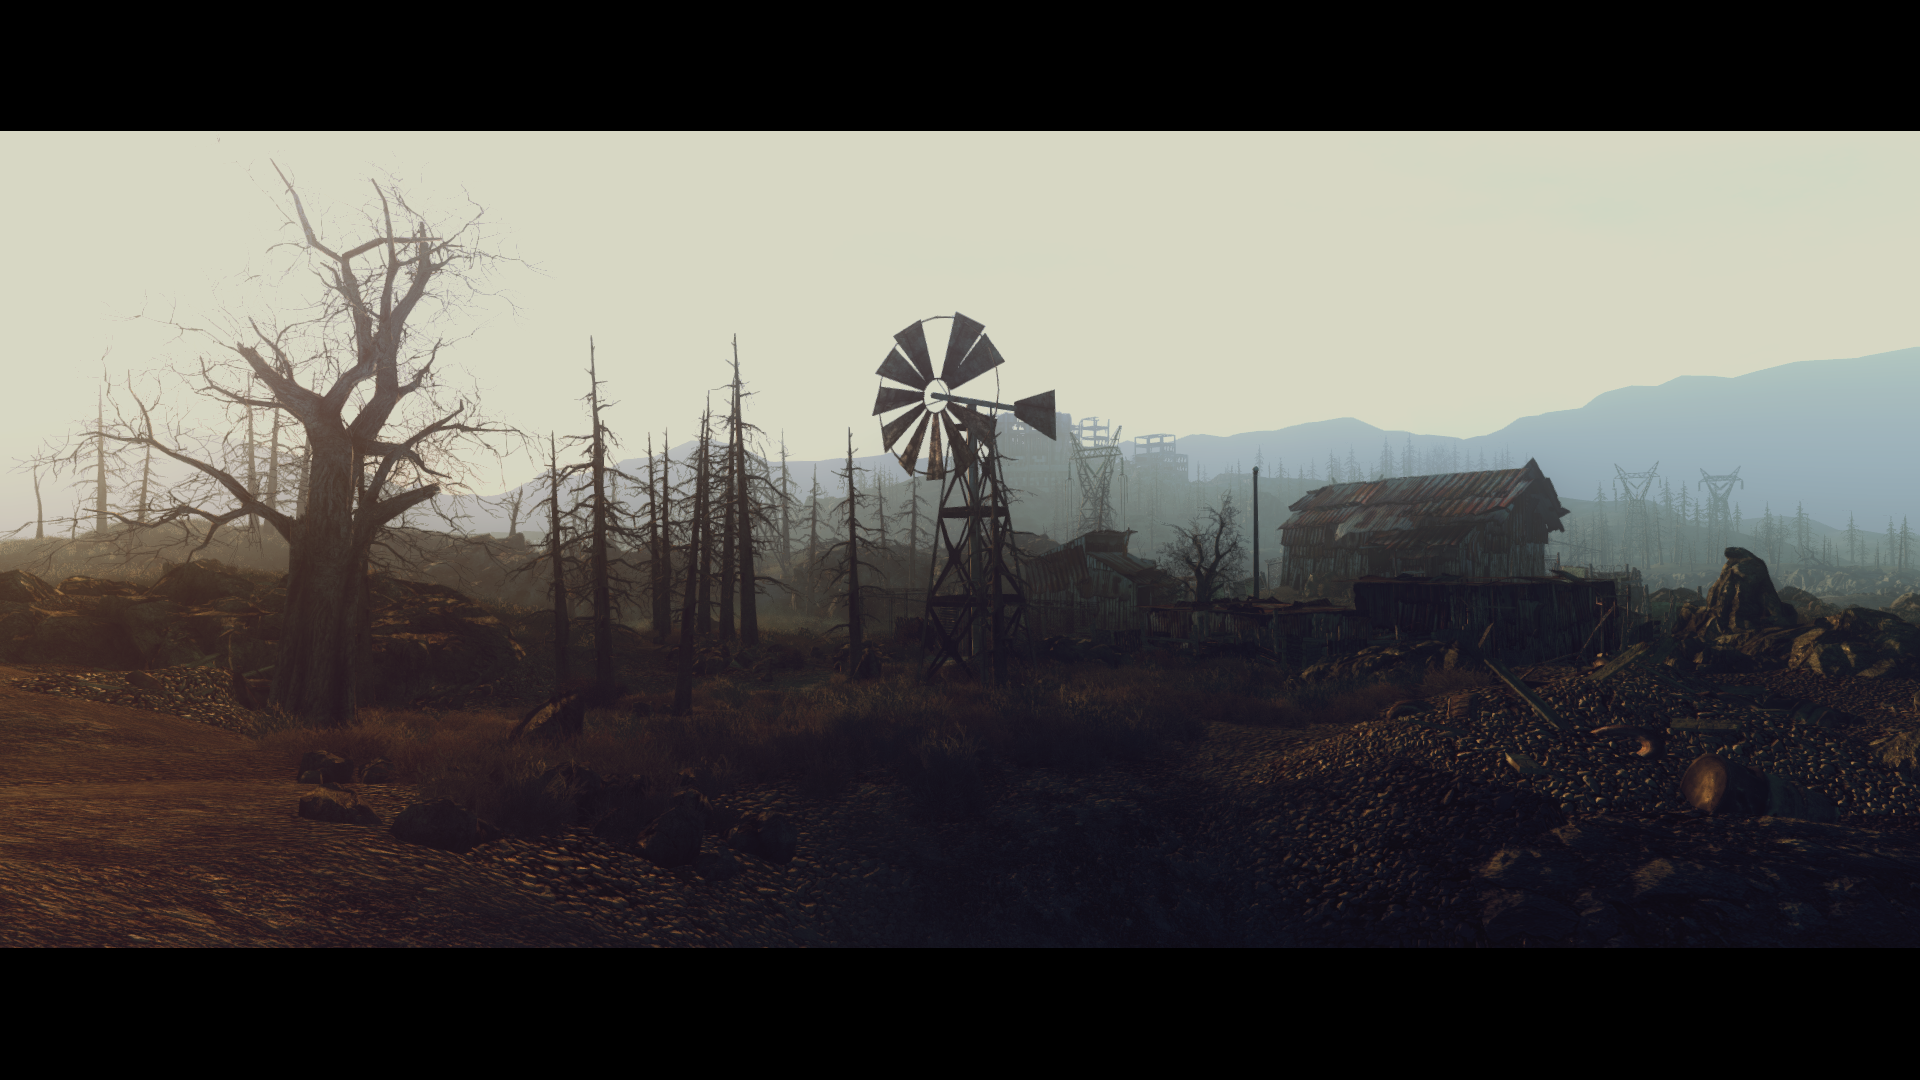 Fallout Wallpapers Widescreen FHDQ Wallpapers of Fallout